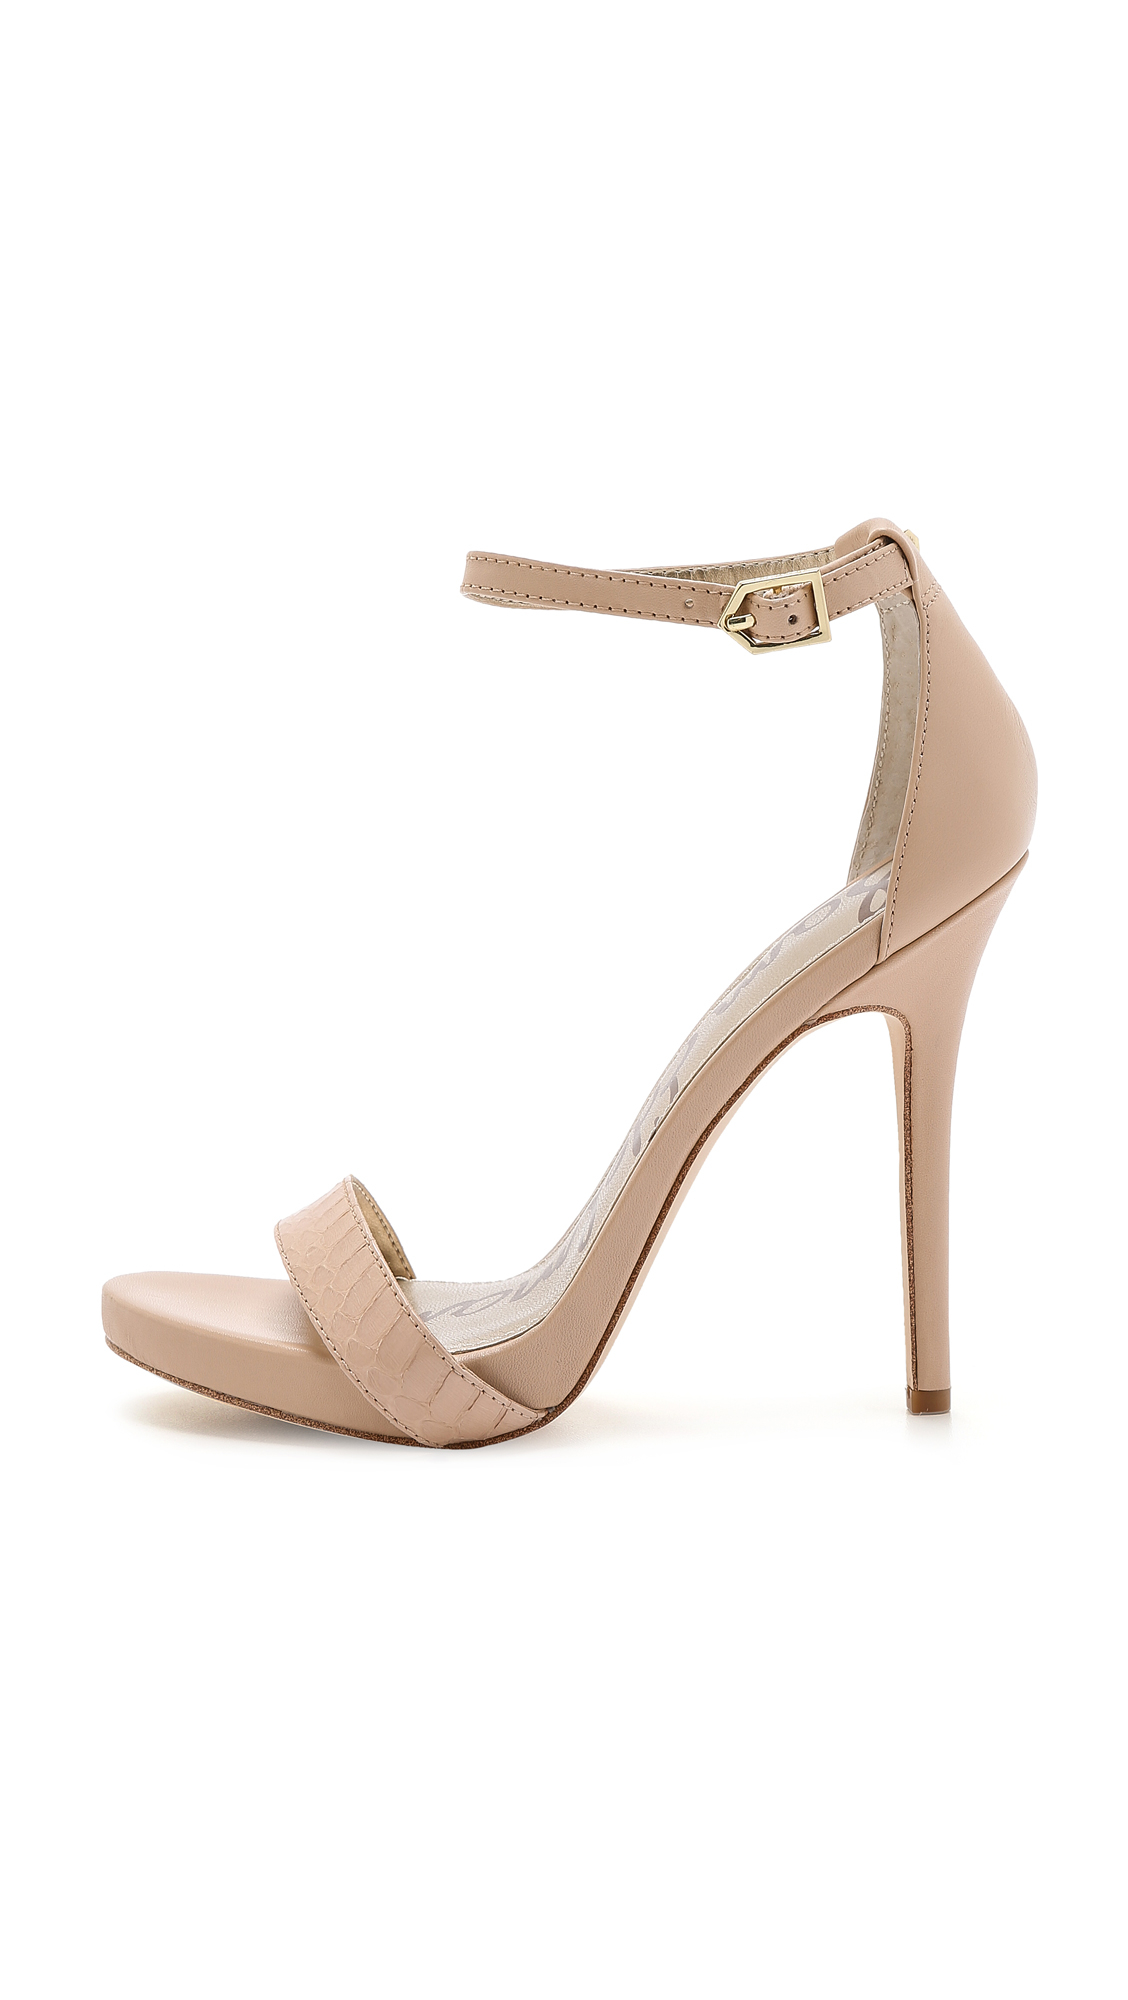 d7dc0887bb09 Lyst - Sam Edelman Eleanor Ankle Strap Sandals - Buff Nude in Natural